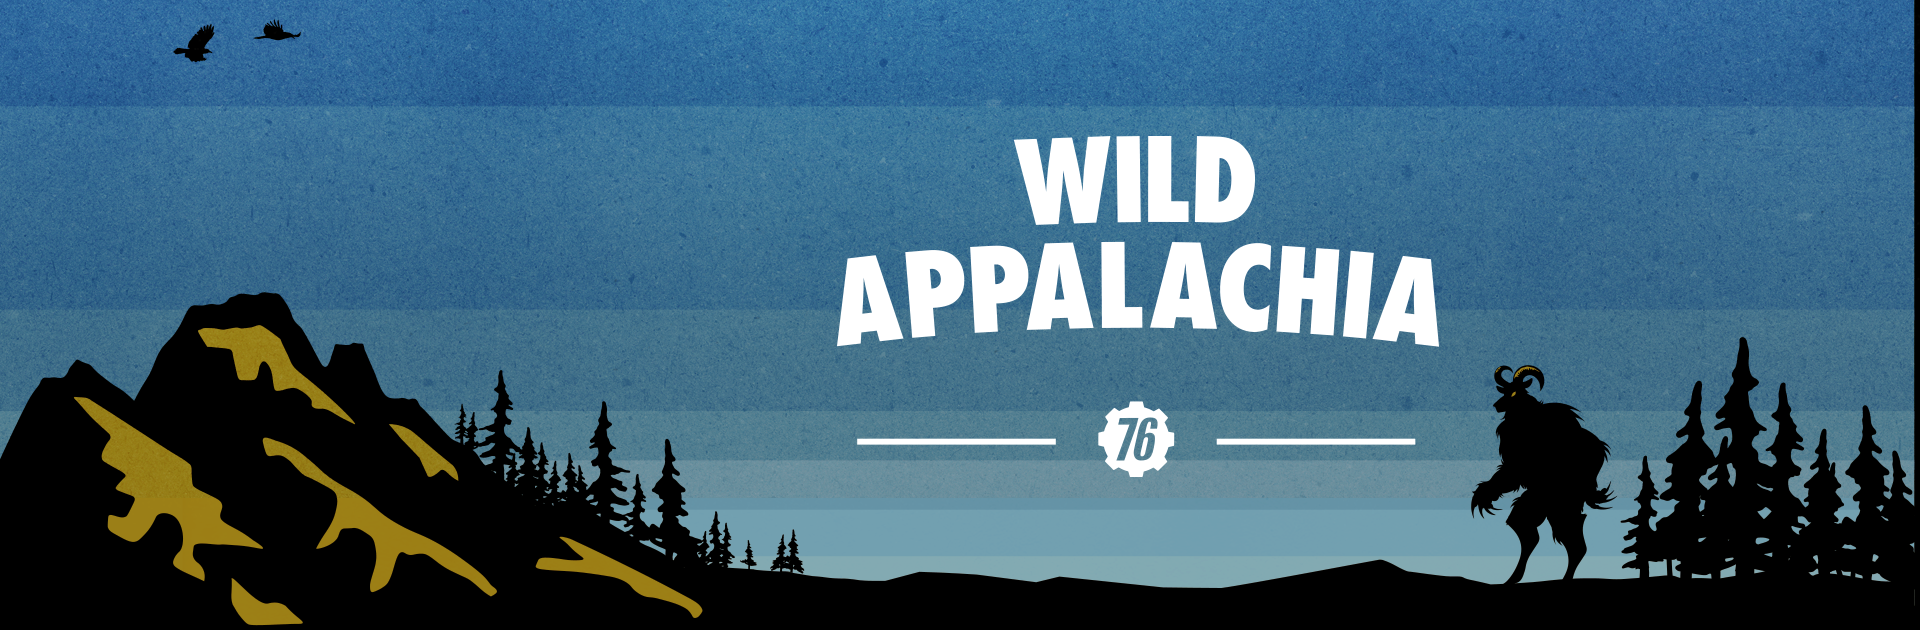 d09735fb0d Welcome to Wild Appalachia!